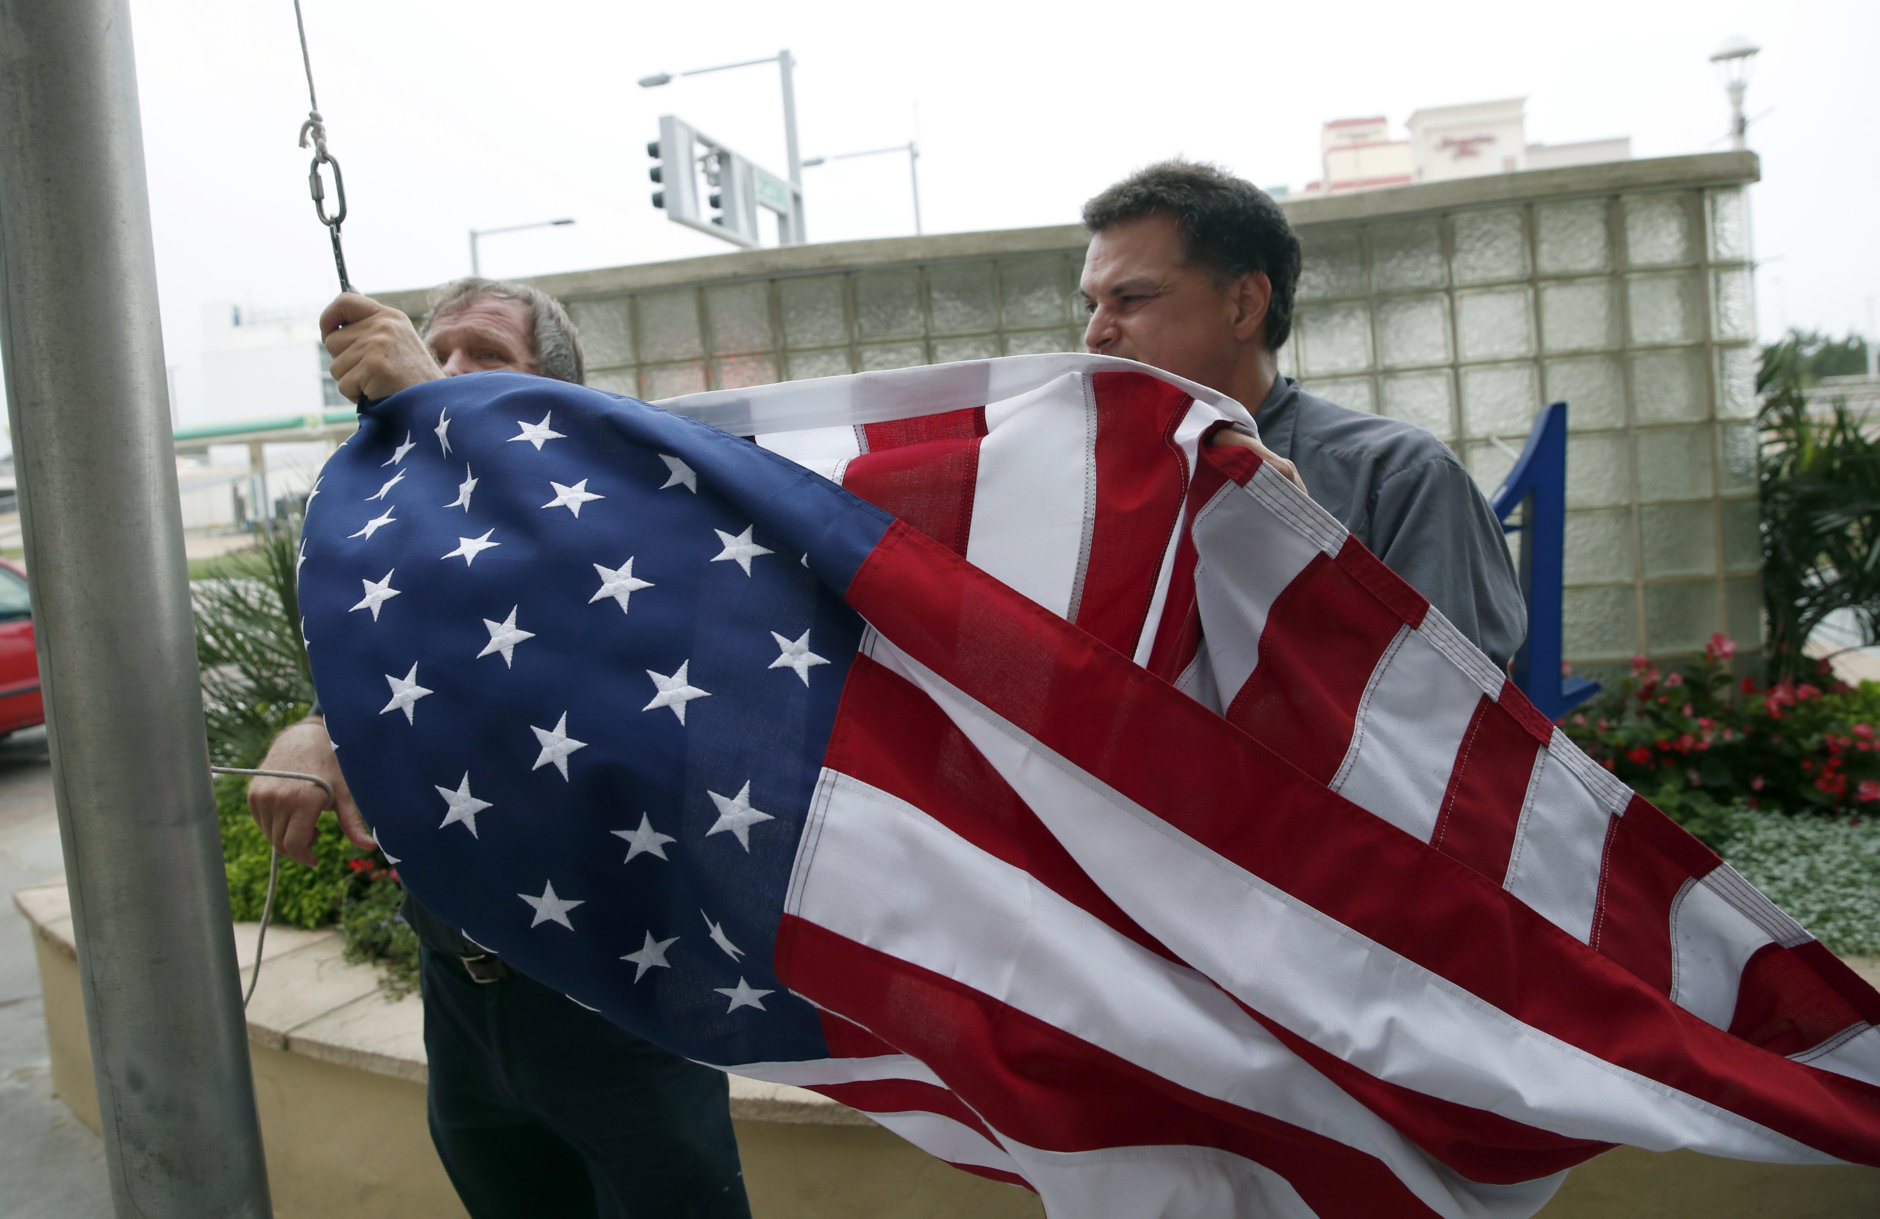 Jim Mehlich, left, and Hans Seda, both with the Hilton Hotel, work to pull down an American flag in windy conditions, Thursday, Sept. 13, 2018, in Virginia Beach, Va., as Hurricane Florence moves towards the eastern shore. (AP Photo/Alex Brandon)